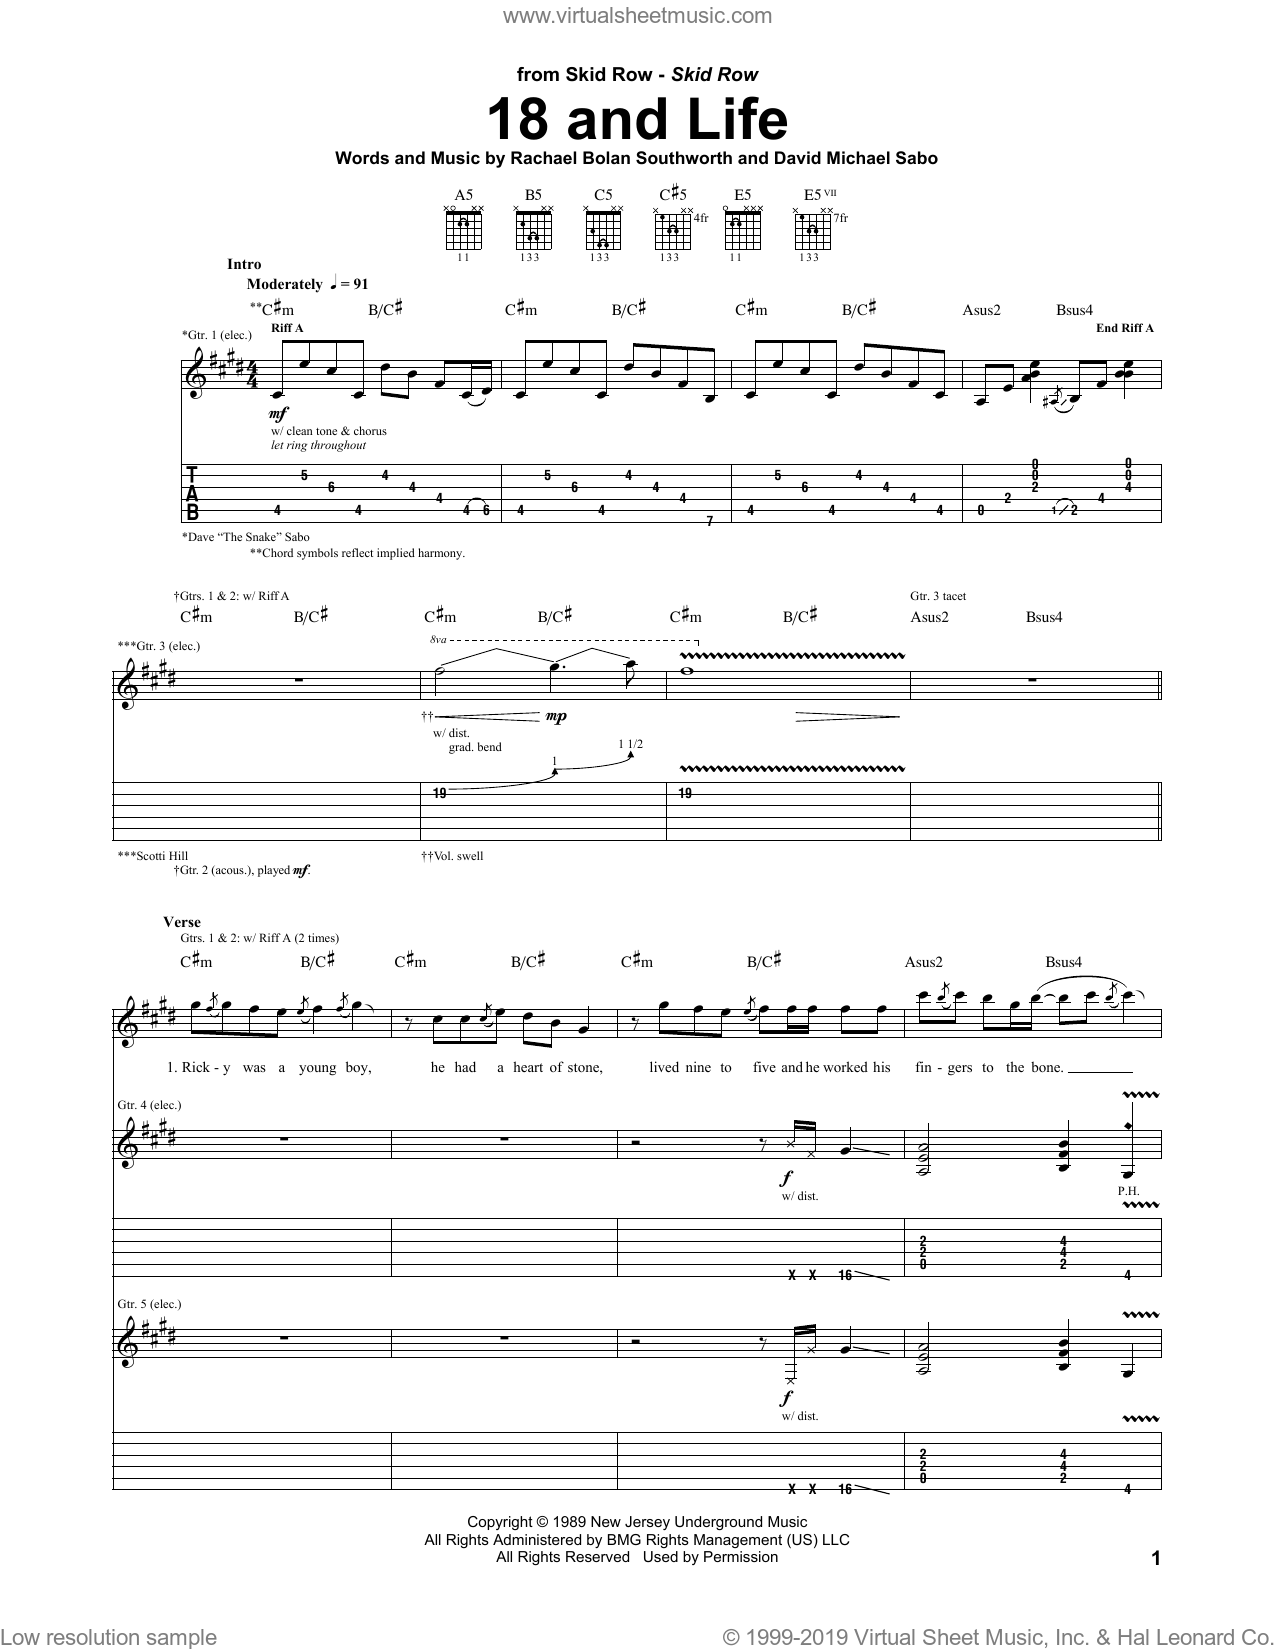 18 And Life sheet music for guitar (tablature) by Skid Row, David Michael Sabo and Rachael Bolan Southworth, intermediate